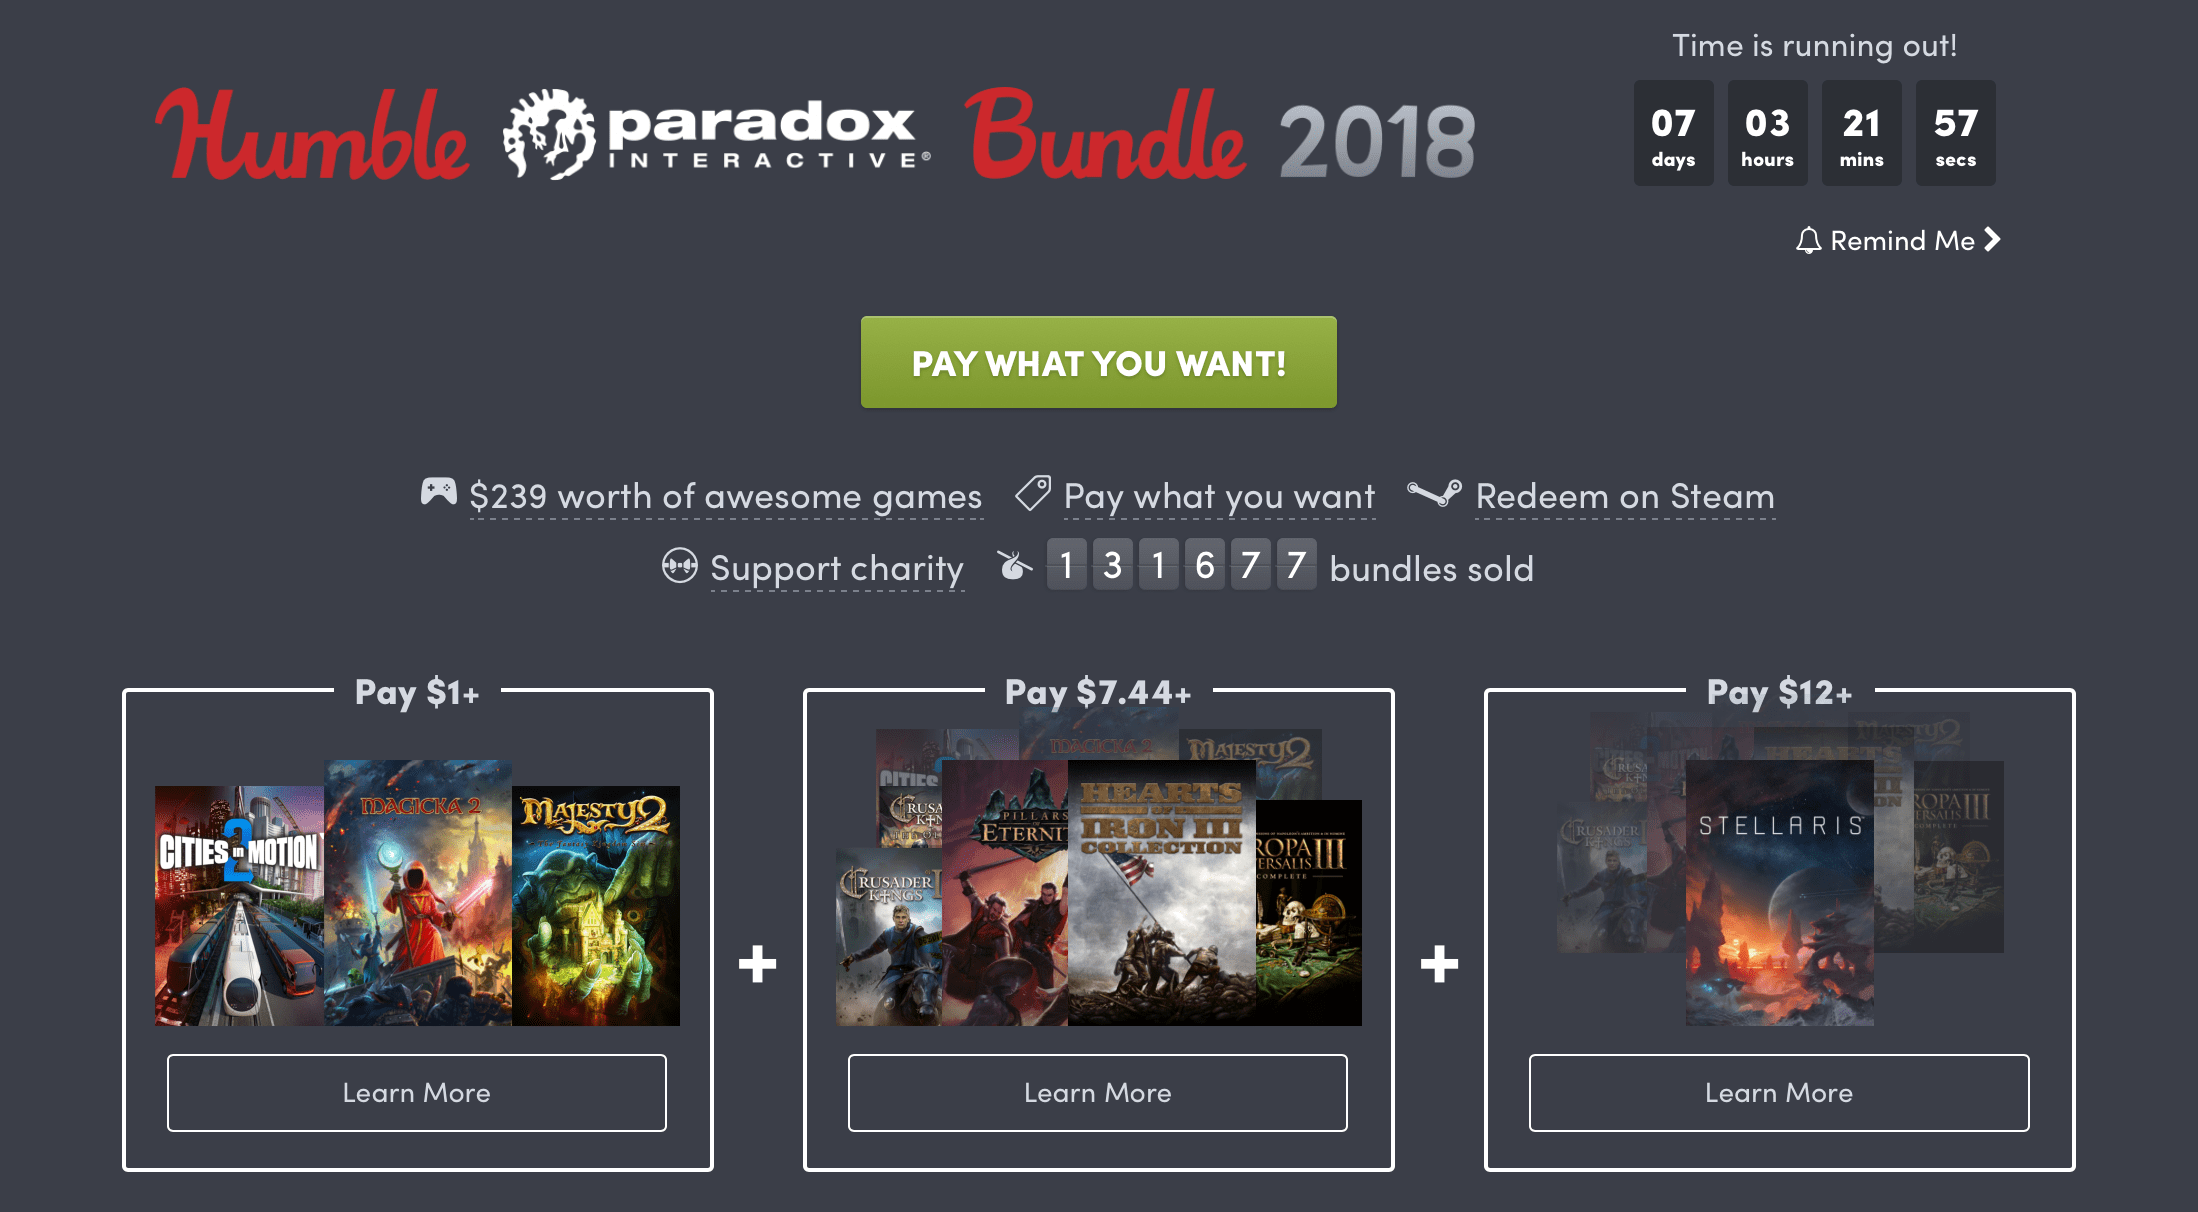 Get Some Great Strategy Games for $12 with Humble's Paradox Interactive Bundle 9